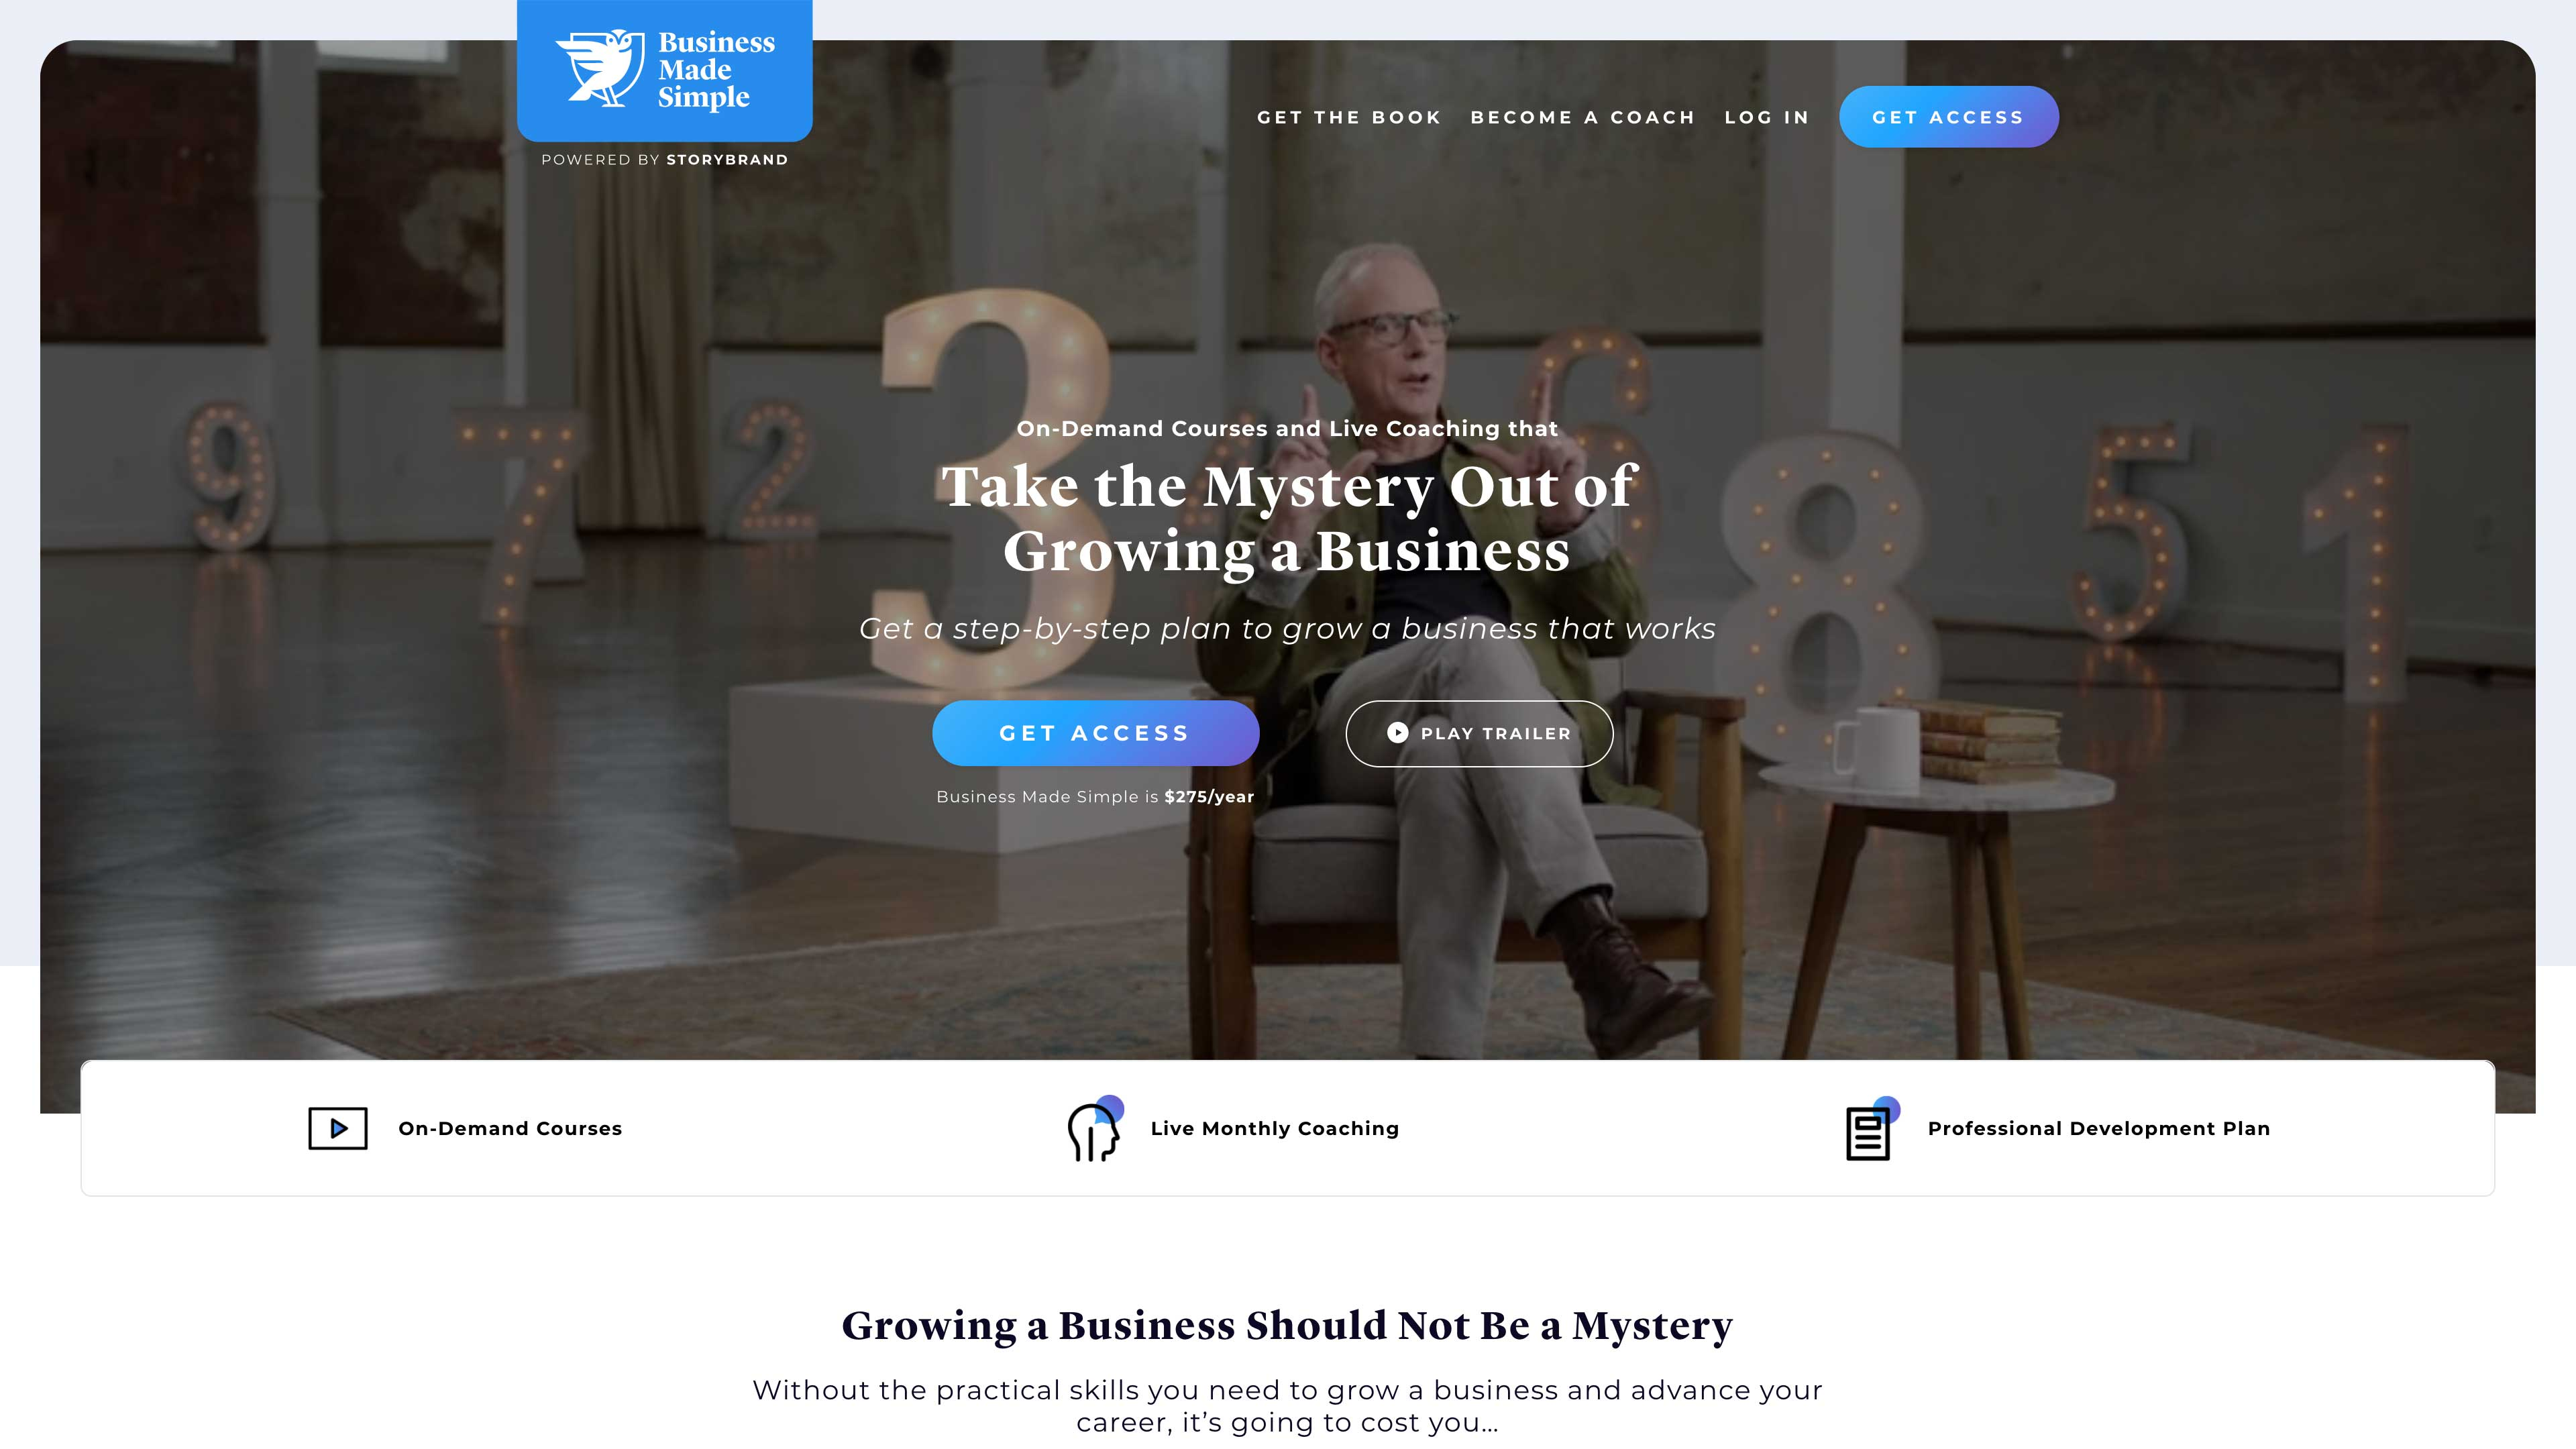 Business Made Simple website.